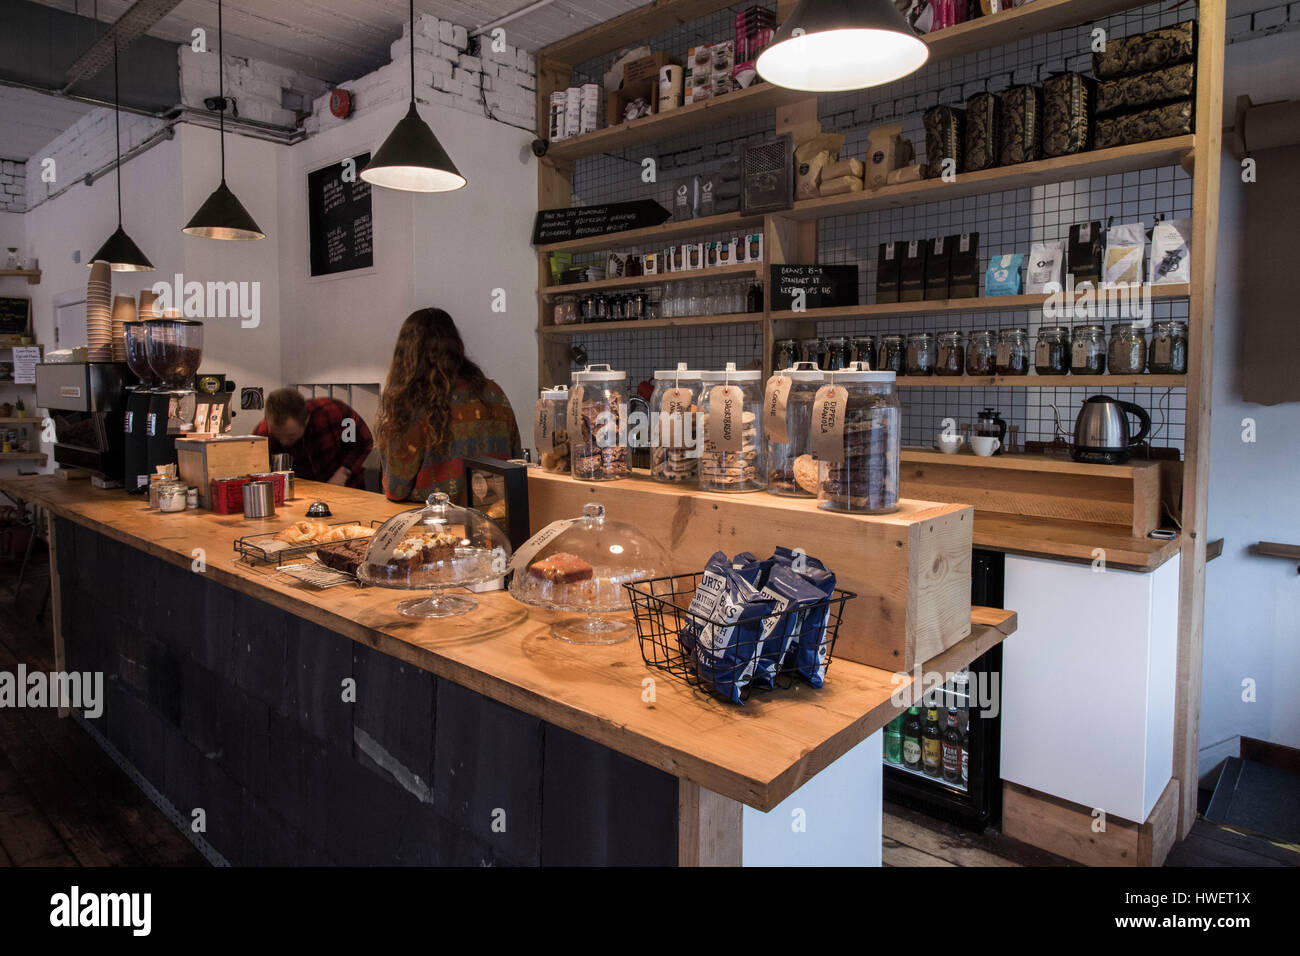 Inside Little Man Coffee Shop In Cardiff Wales Stock Photo